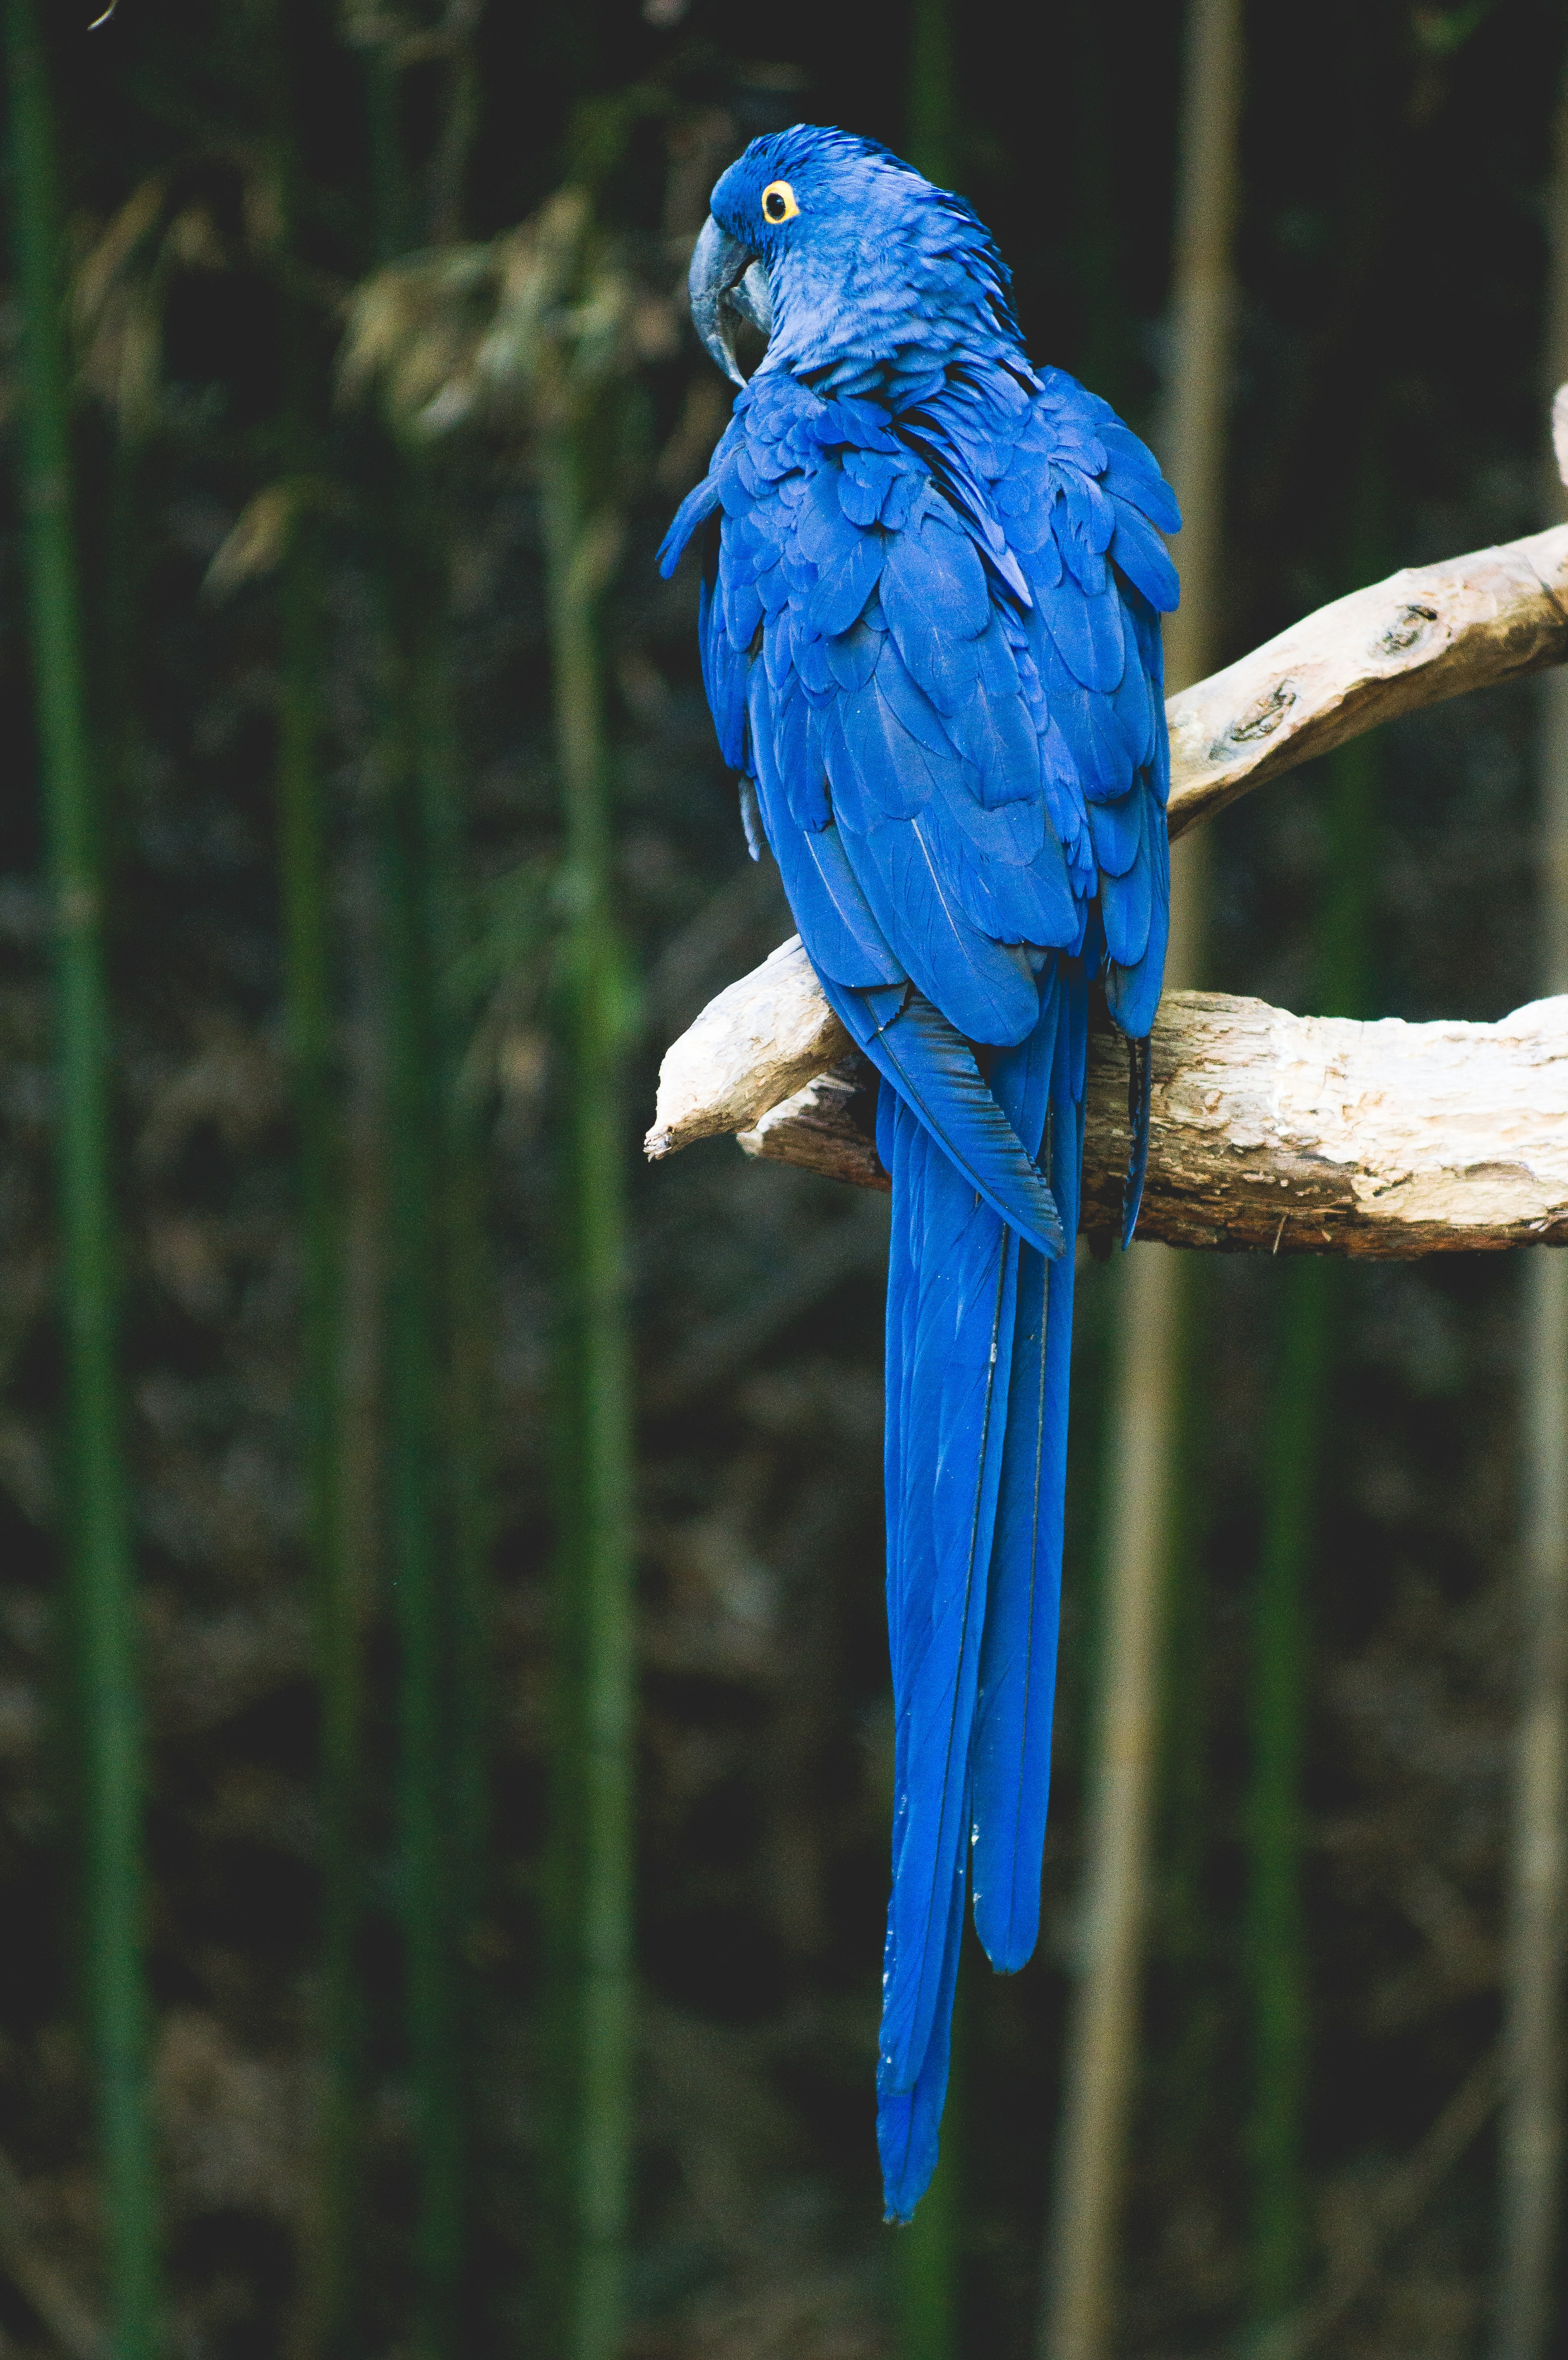 Colorful blue parrot with vibrant feathers perched on a branch